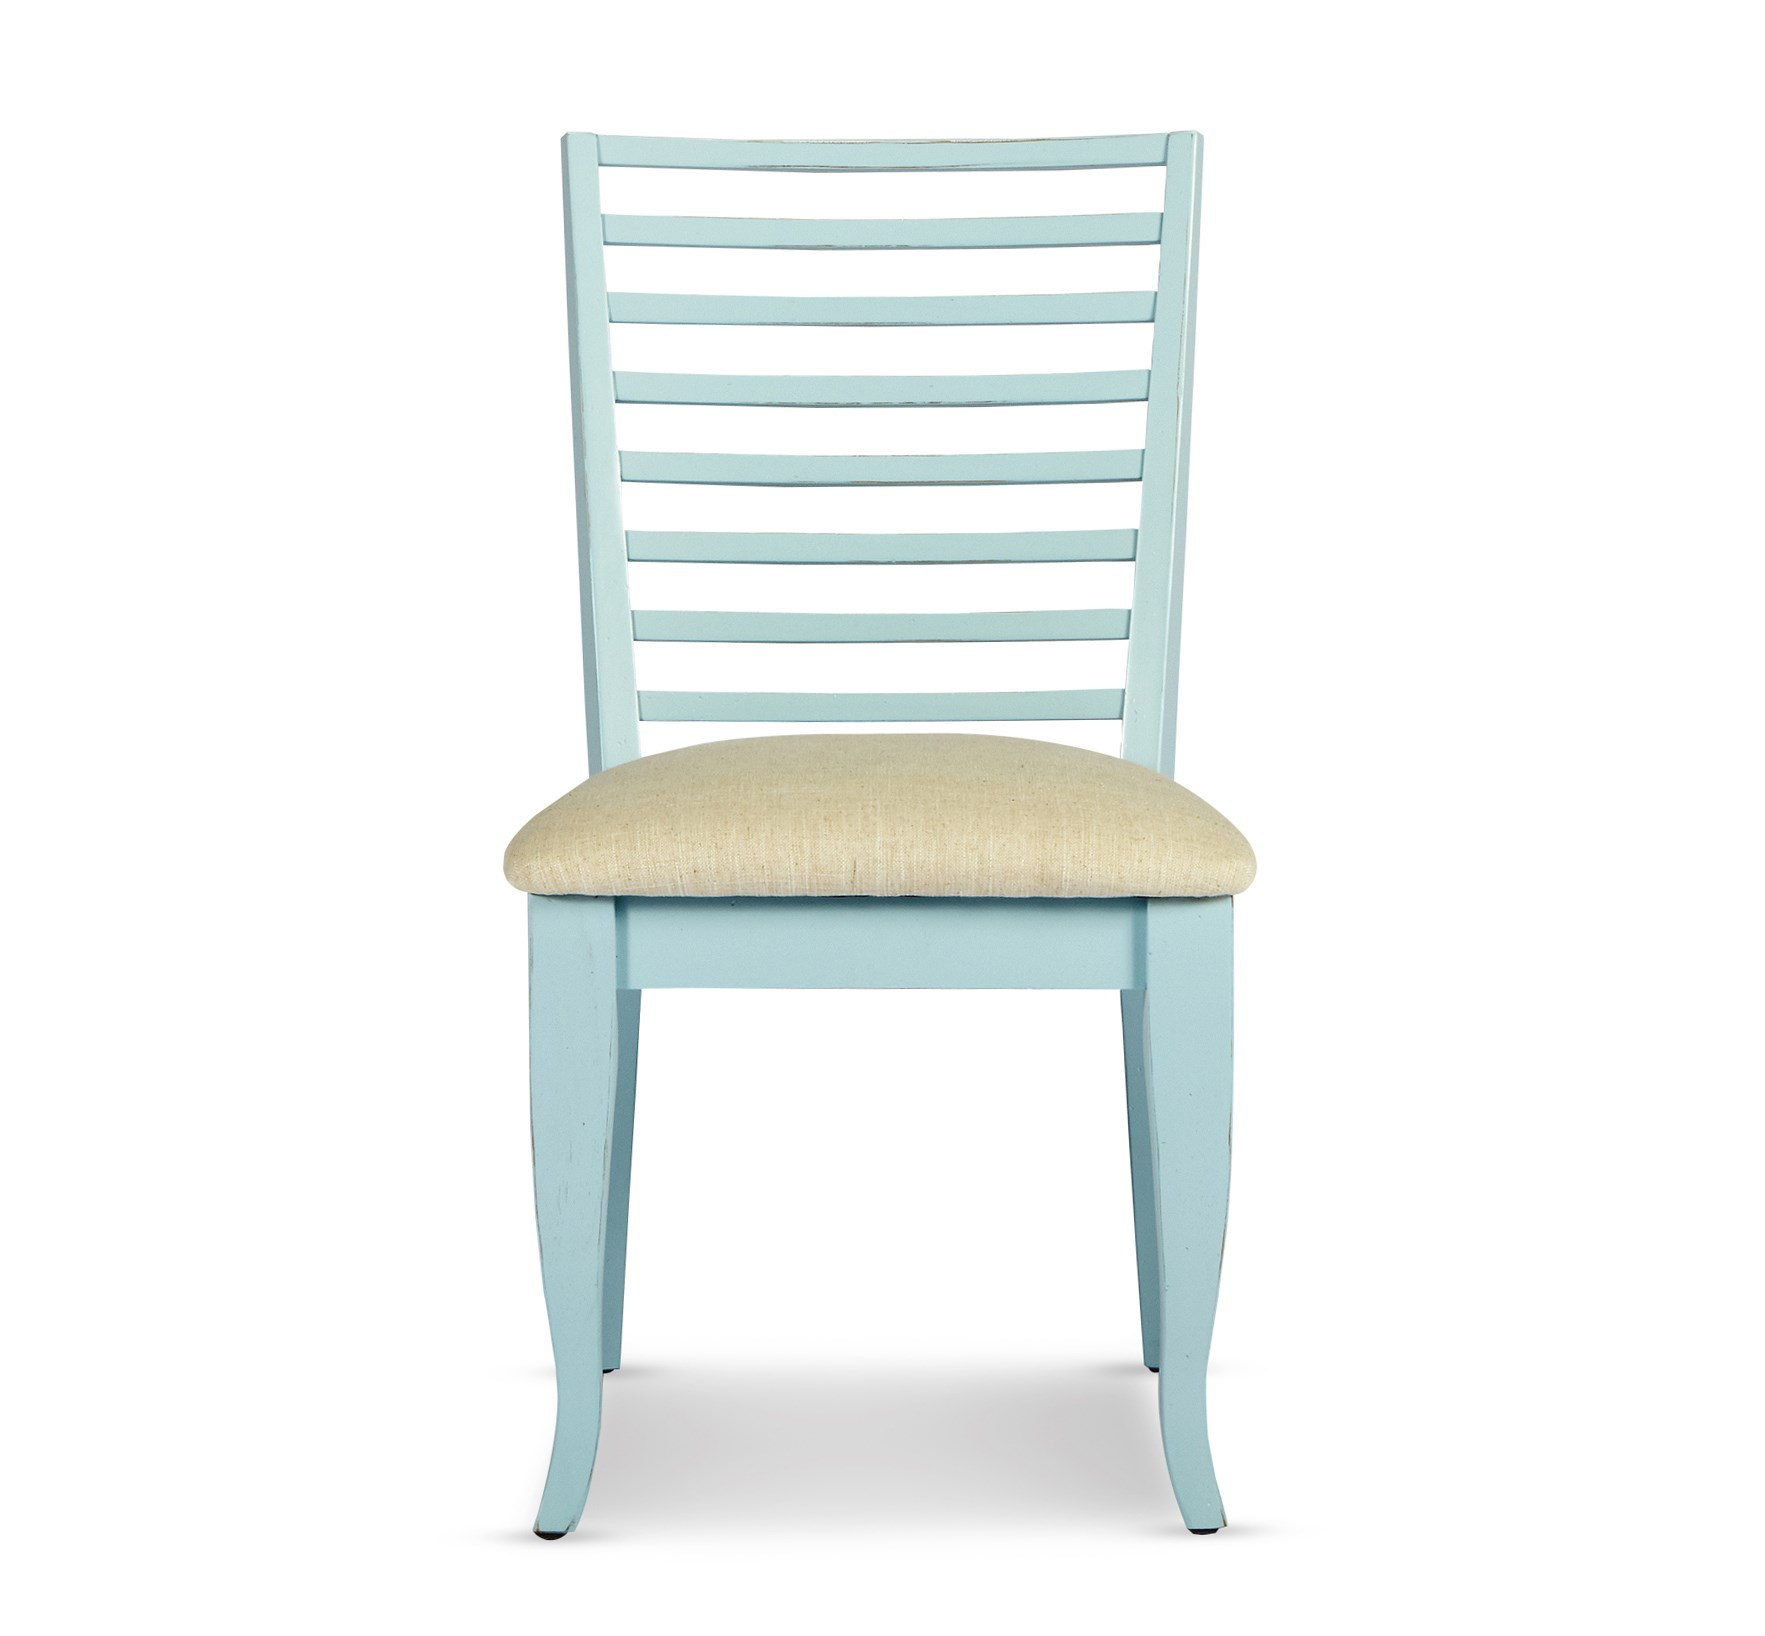 Antique baby blue side chair dining chairs dining room robb stucky for Robb and stucky bedroom furniture